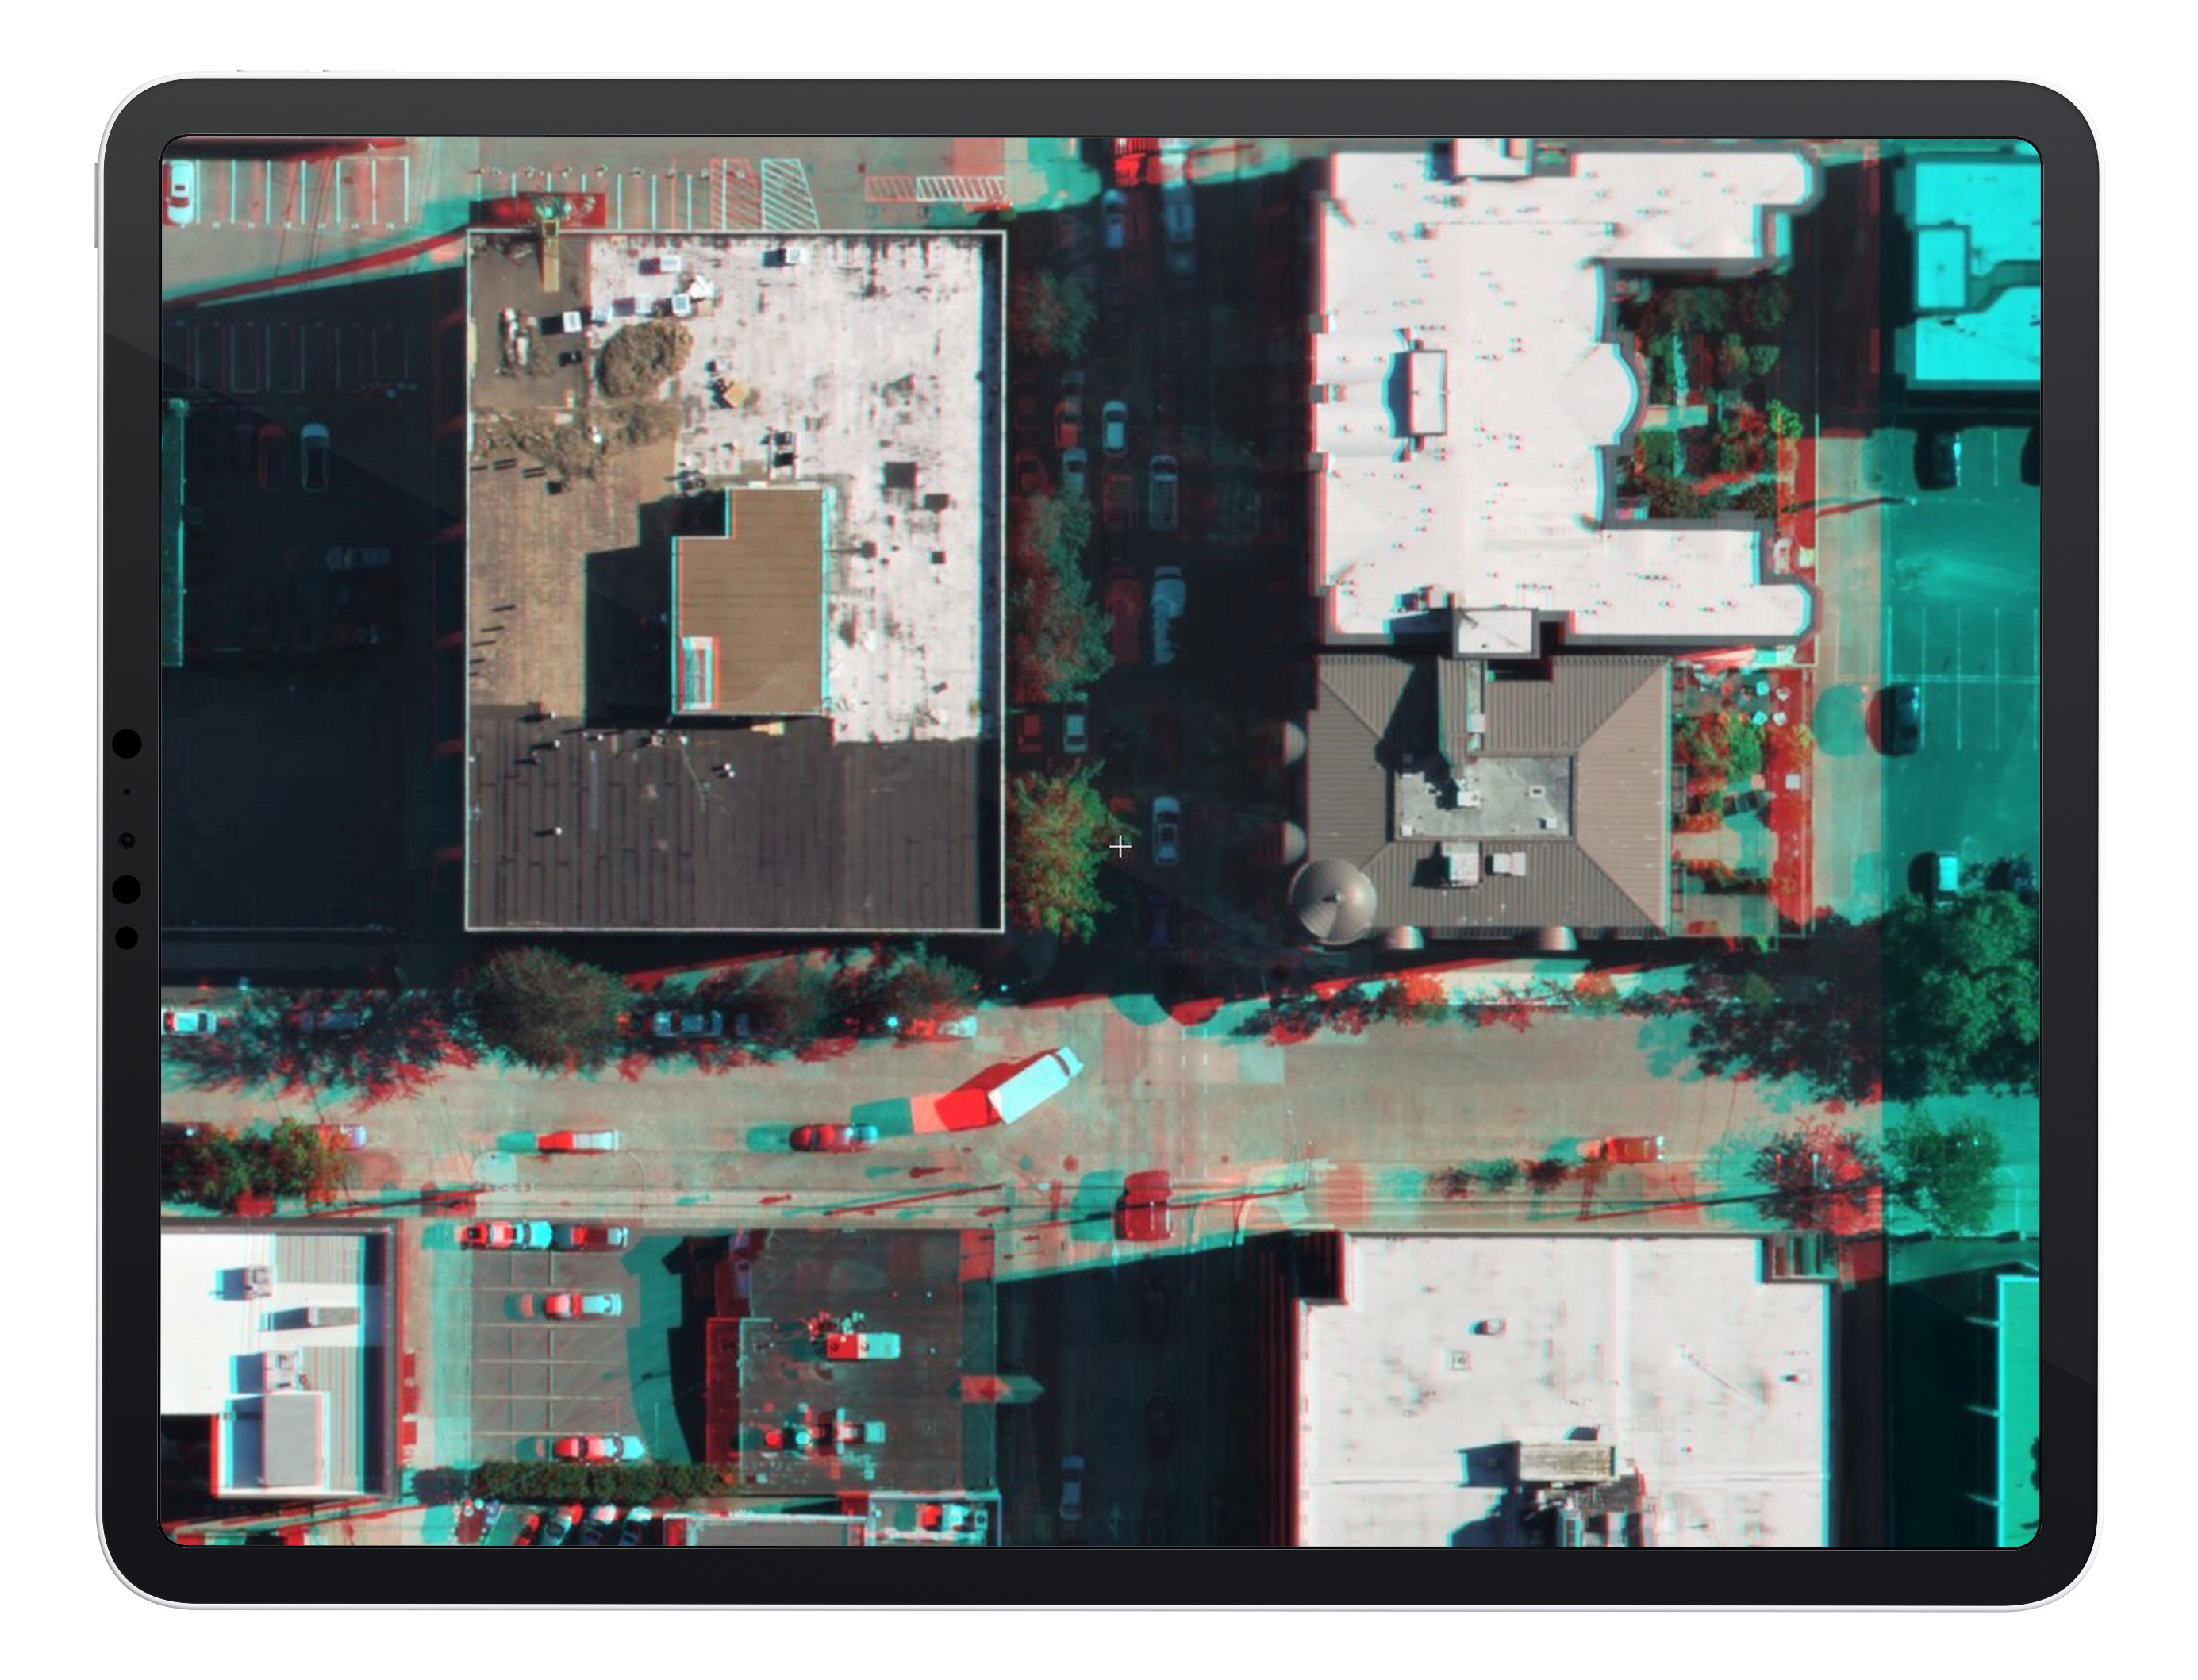 Stereo Imagery on Tablet